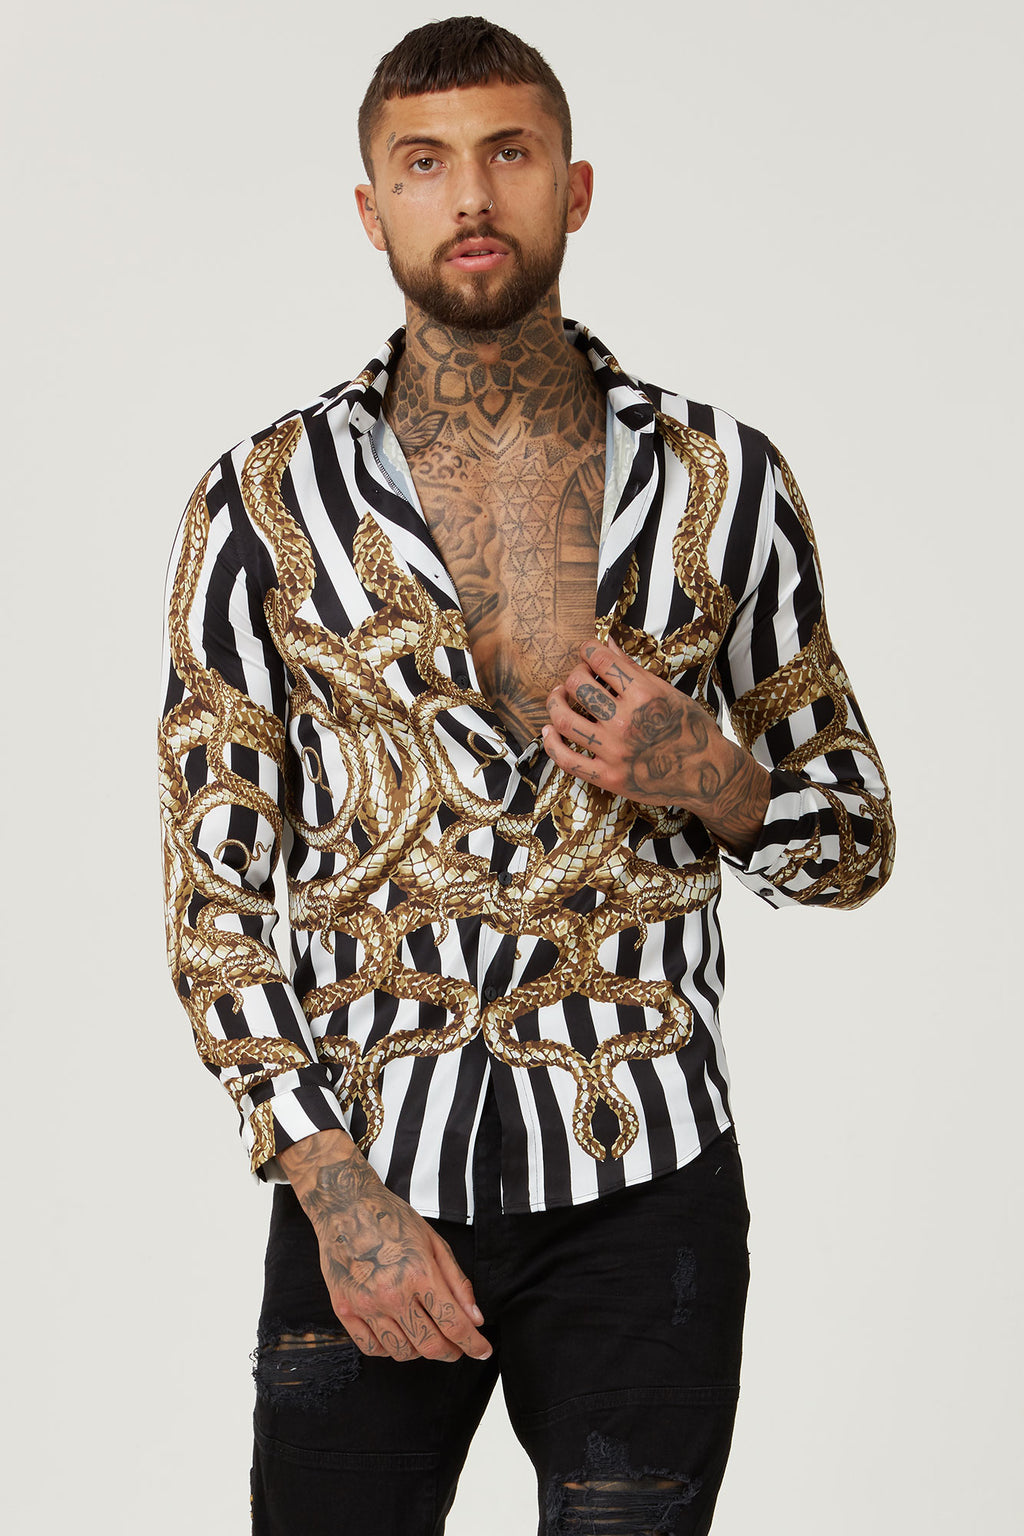 HERMANO SNAKE LONG SMART COLLAR LONG SLEEVE SHIRT - H E R M A N O